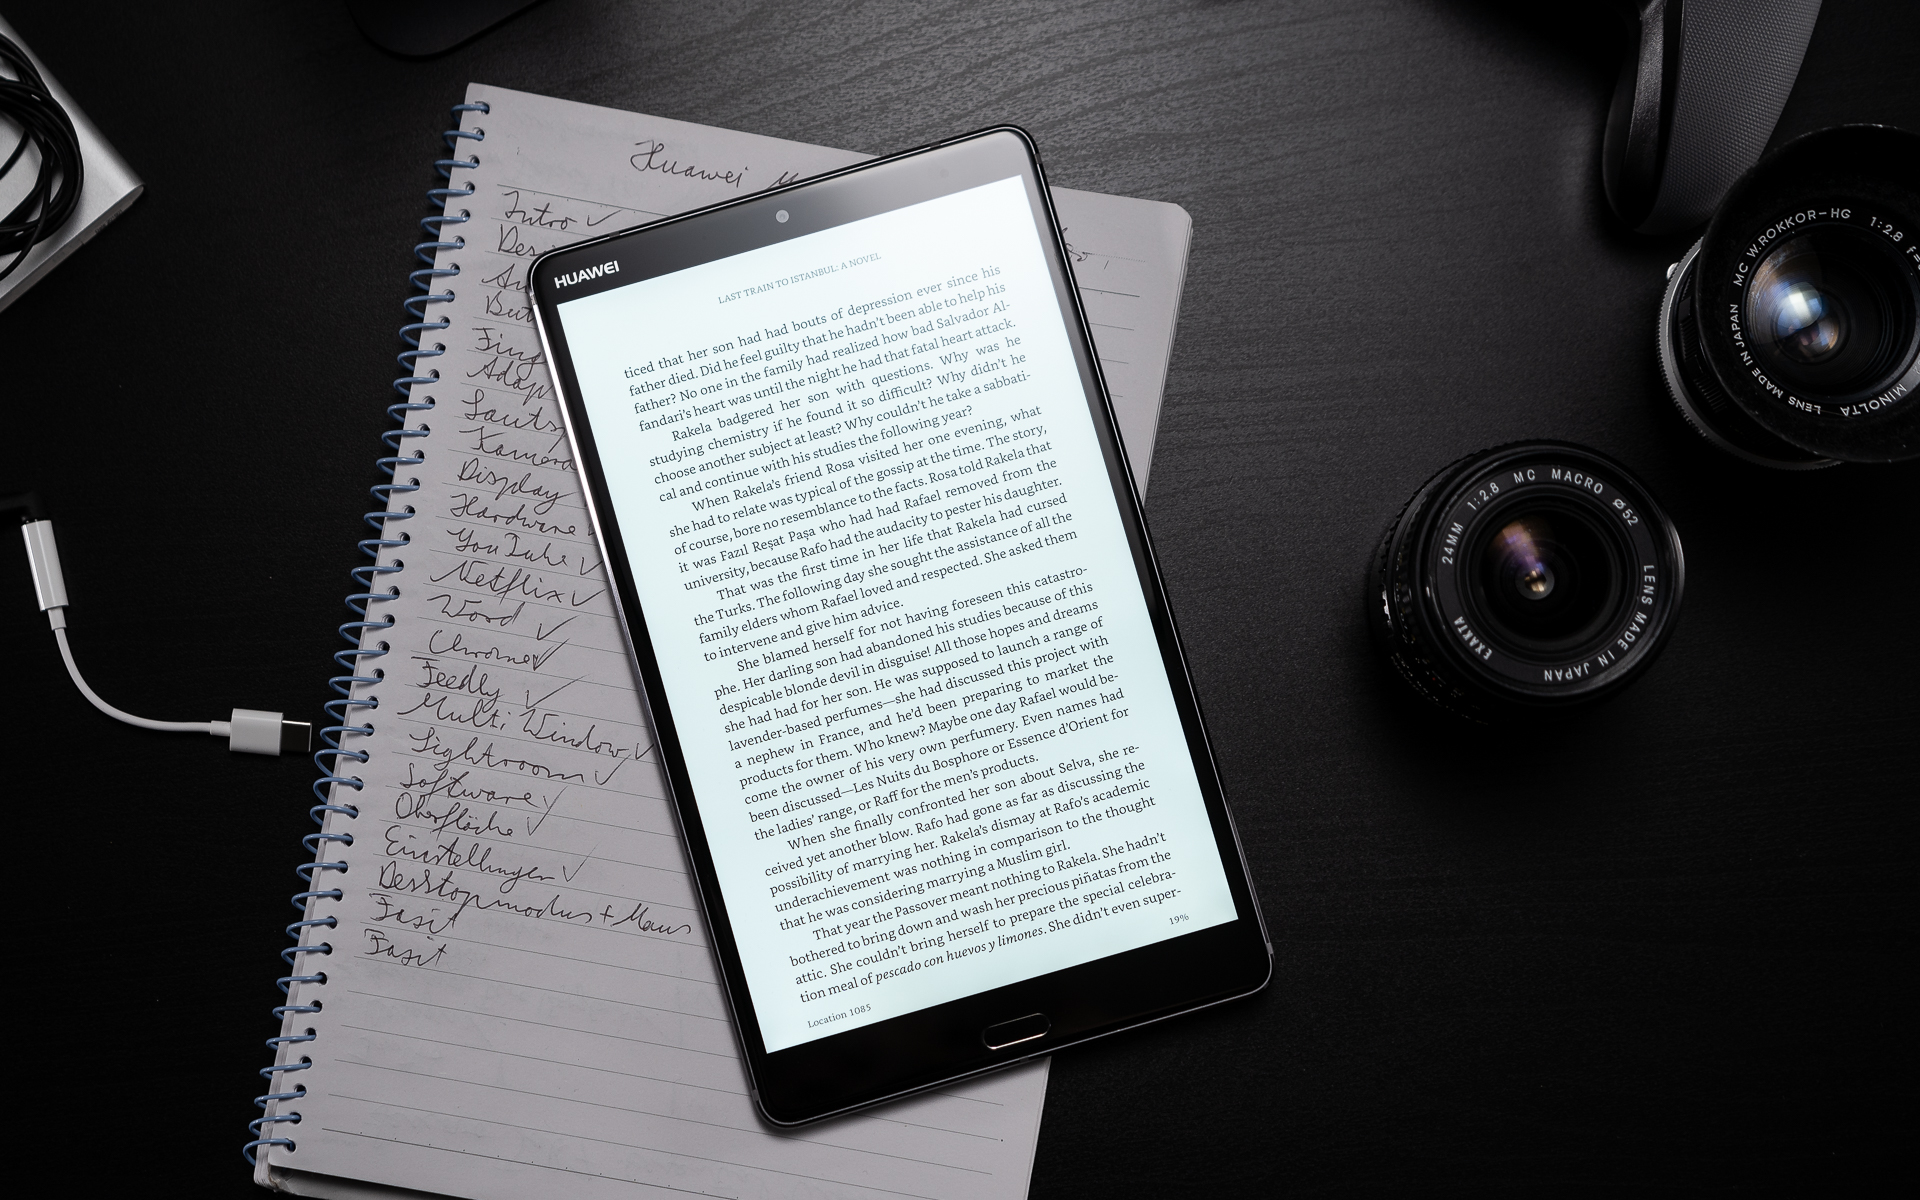 Huawei MediaPad M5 8 mit Amazon Kindle